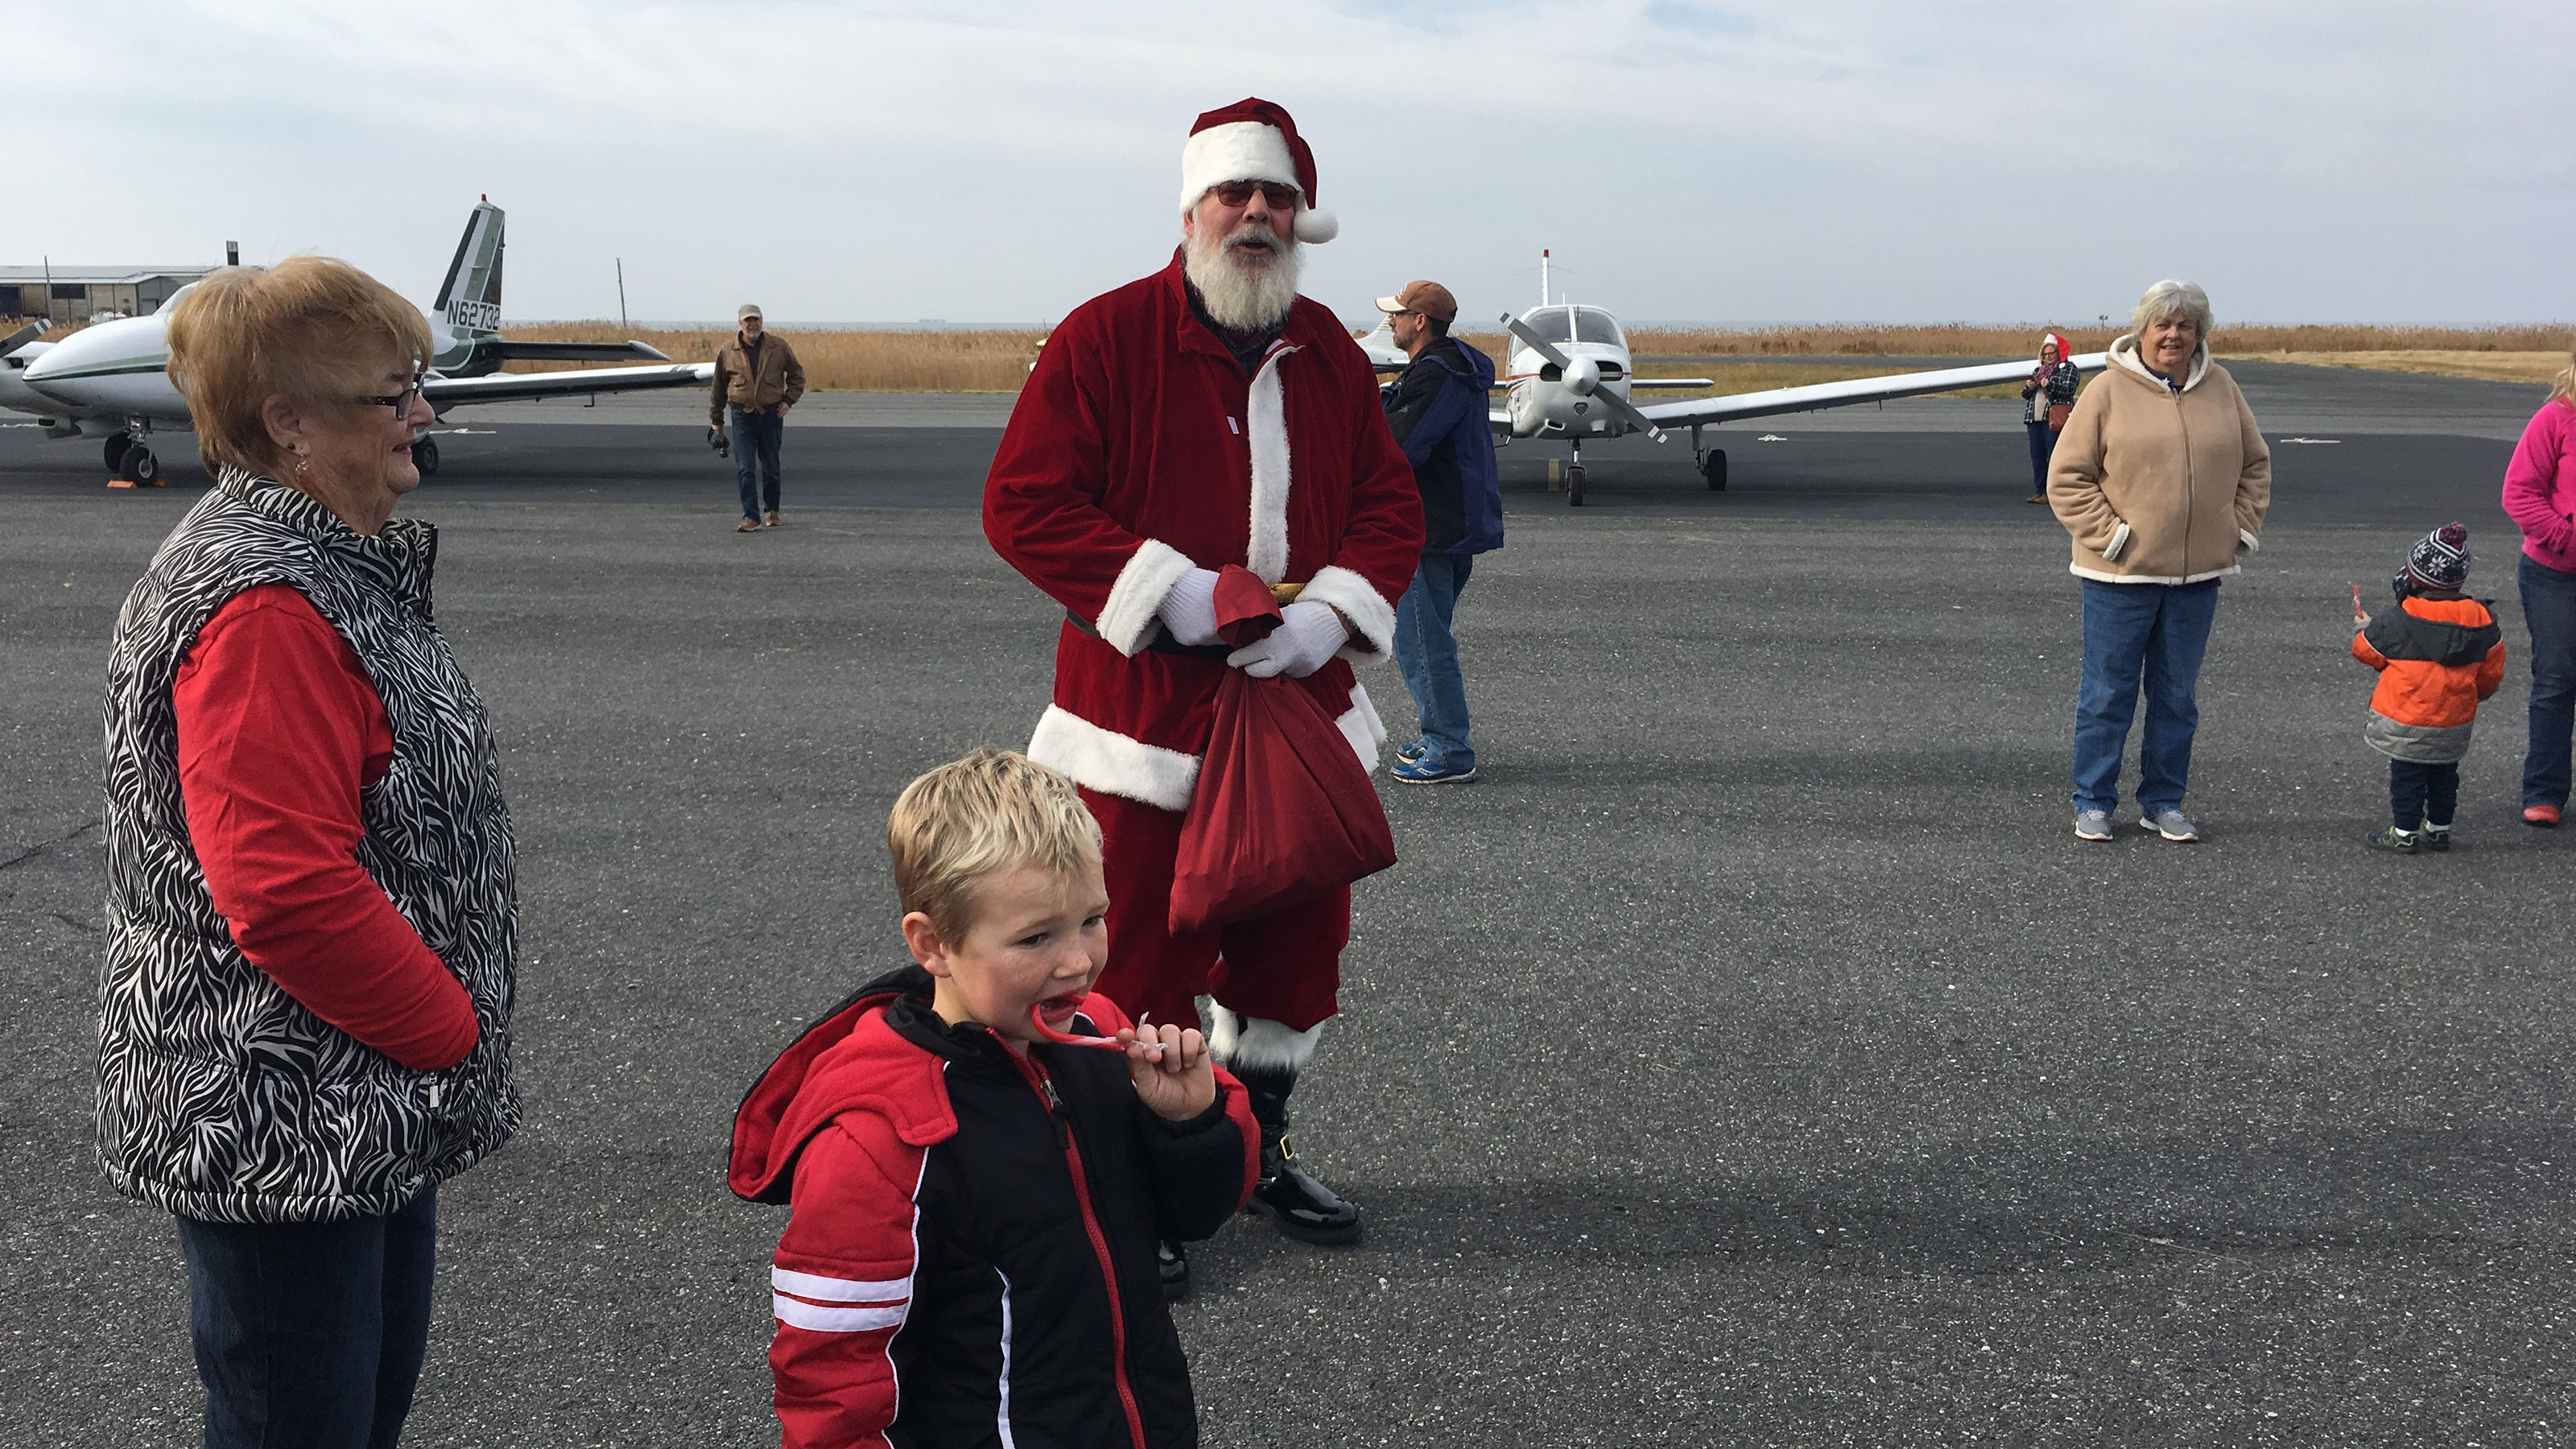 Santa arrives at Tangier Island for the Holly Run. Photo by Joe Kildea.